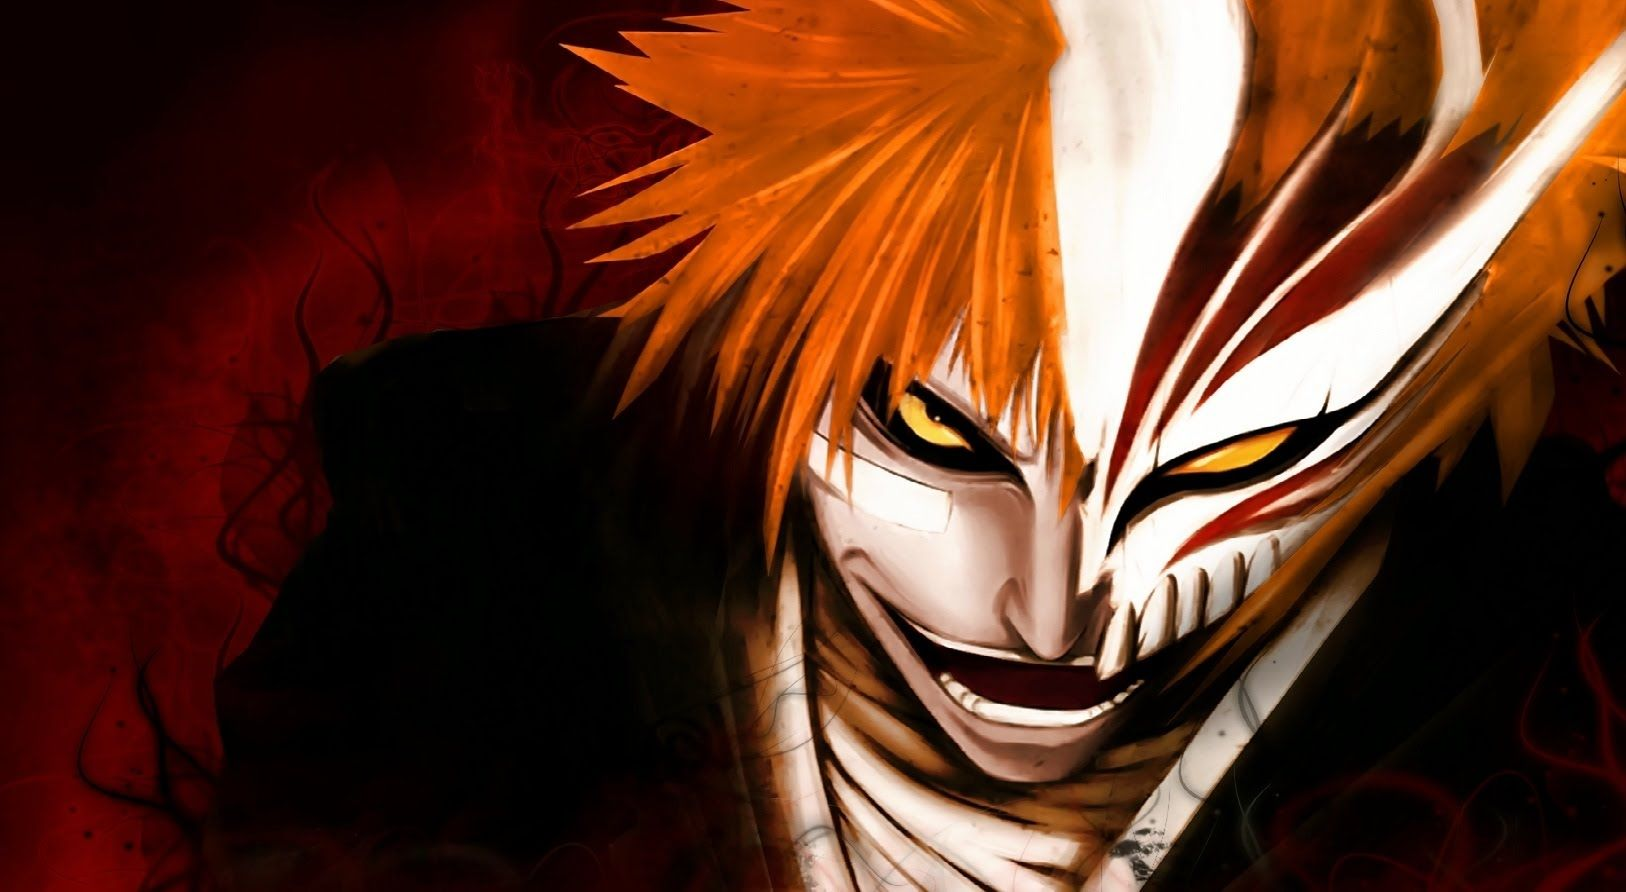 Pin by AUSSoo8 on Anime Bleach anime, Bleach anime